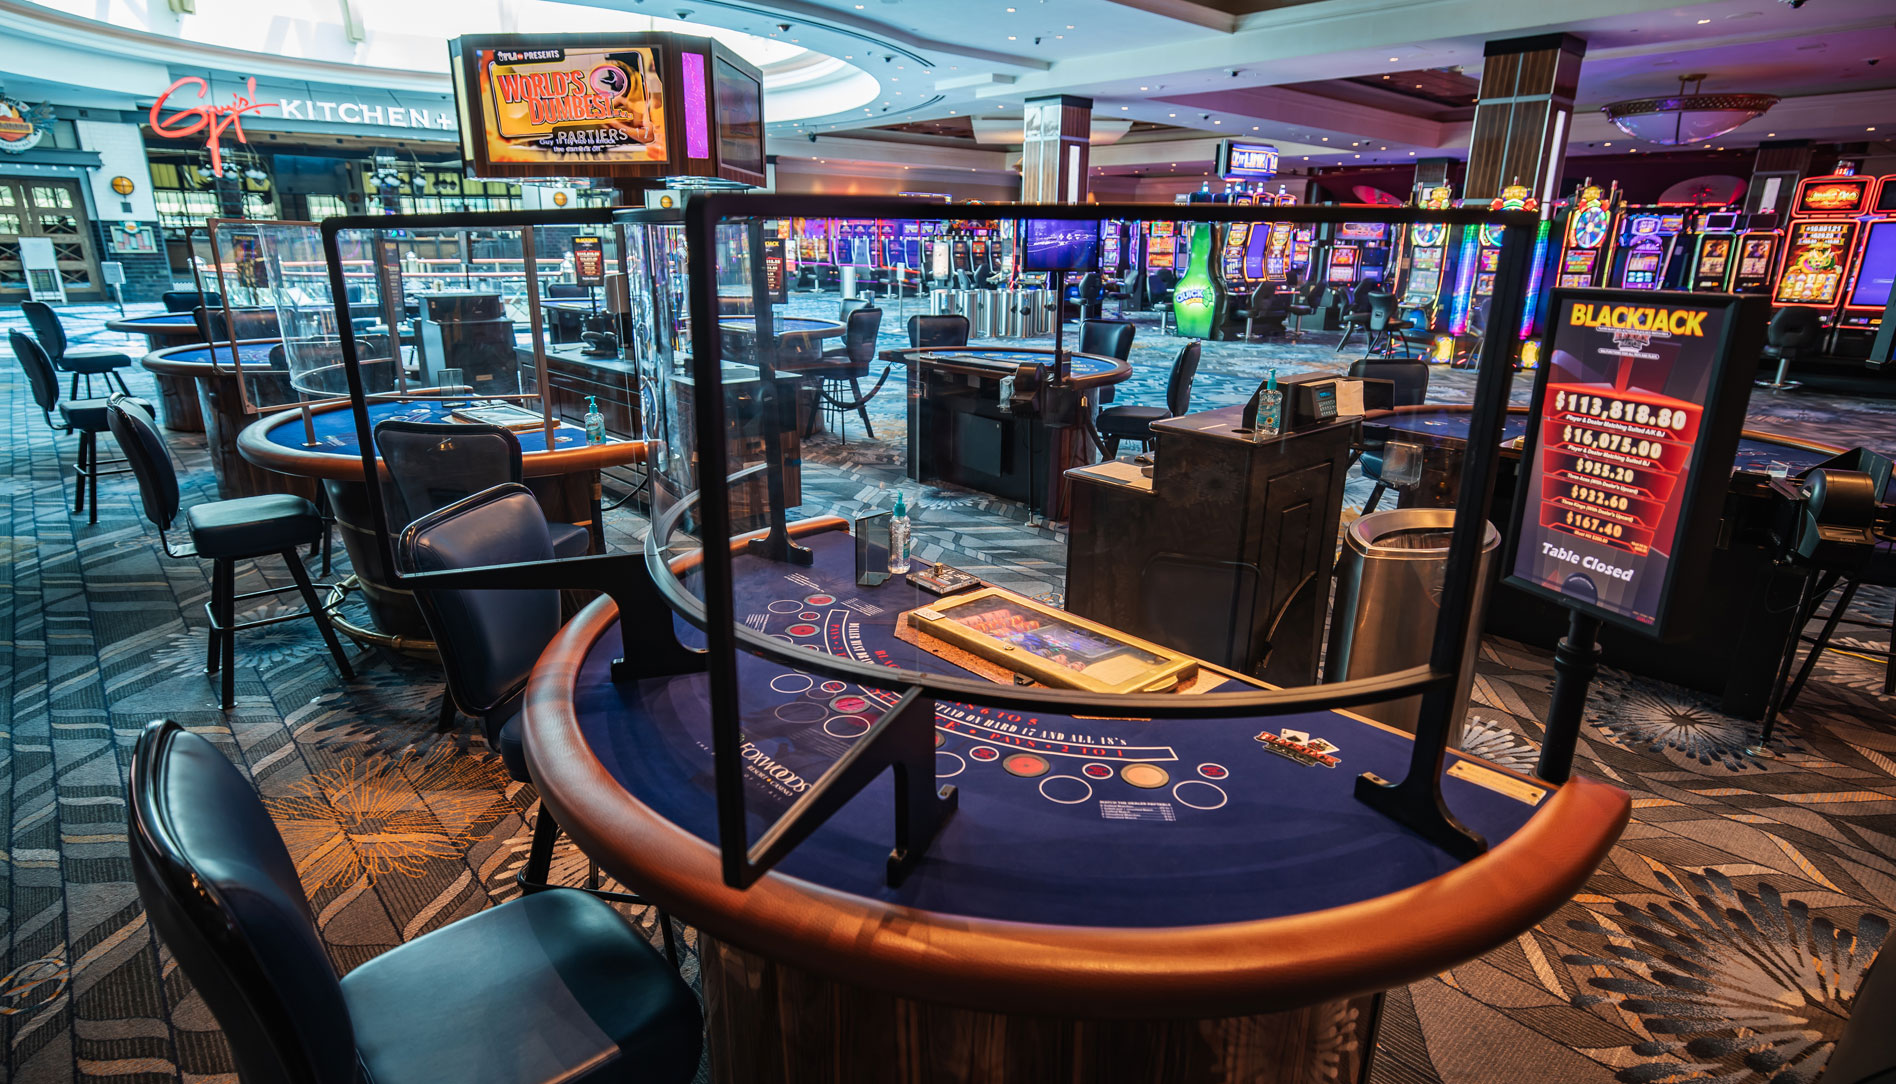 Foxwood casino poker room hotels at casino in tunica mississippi